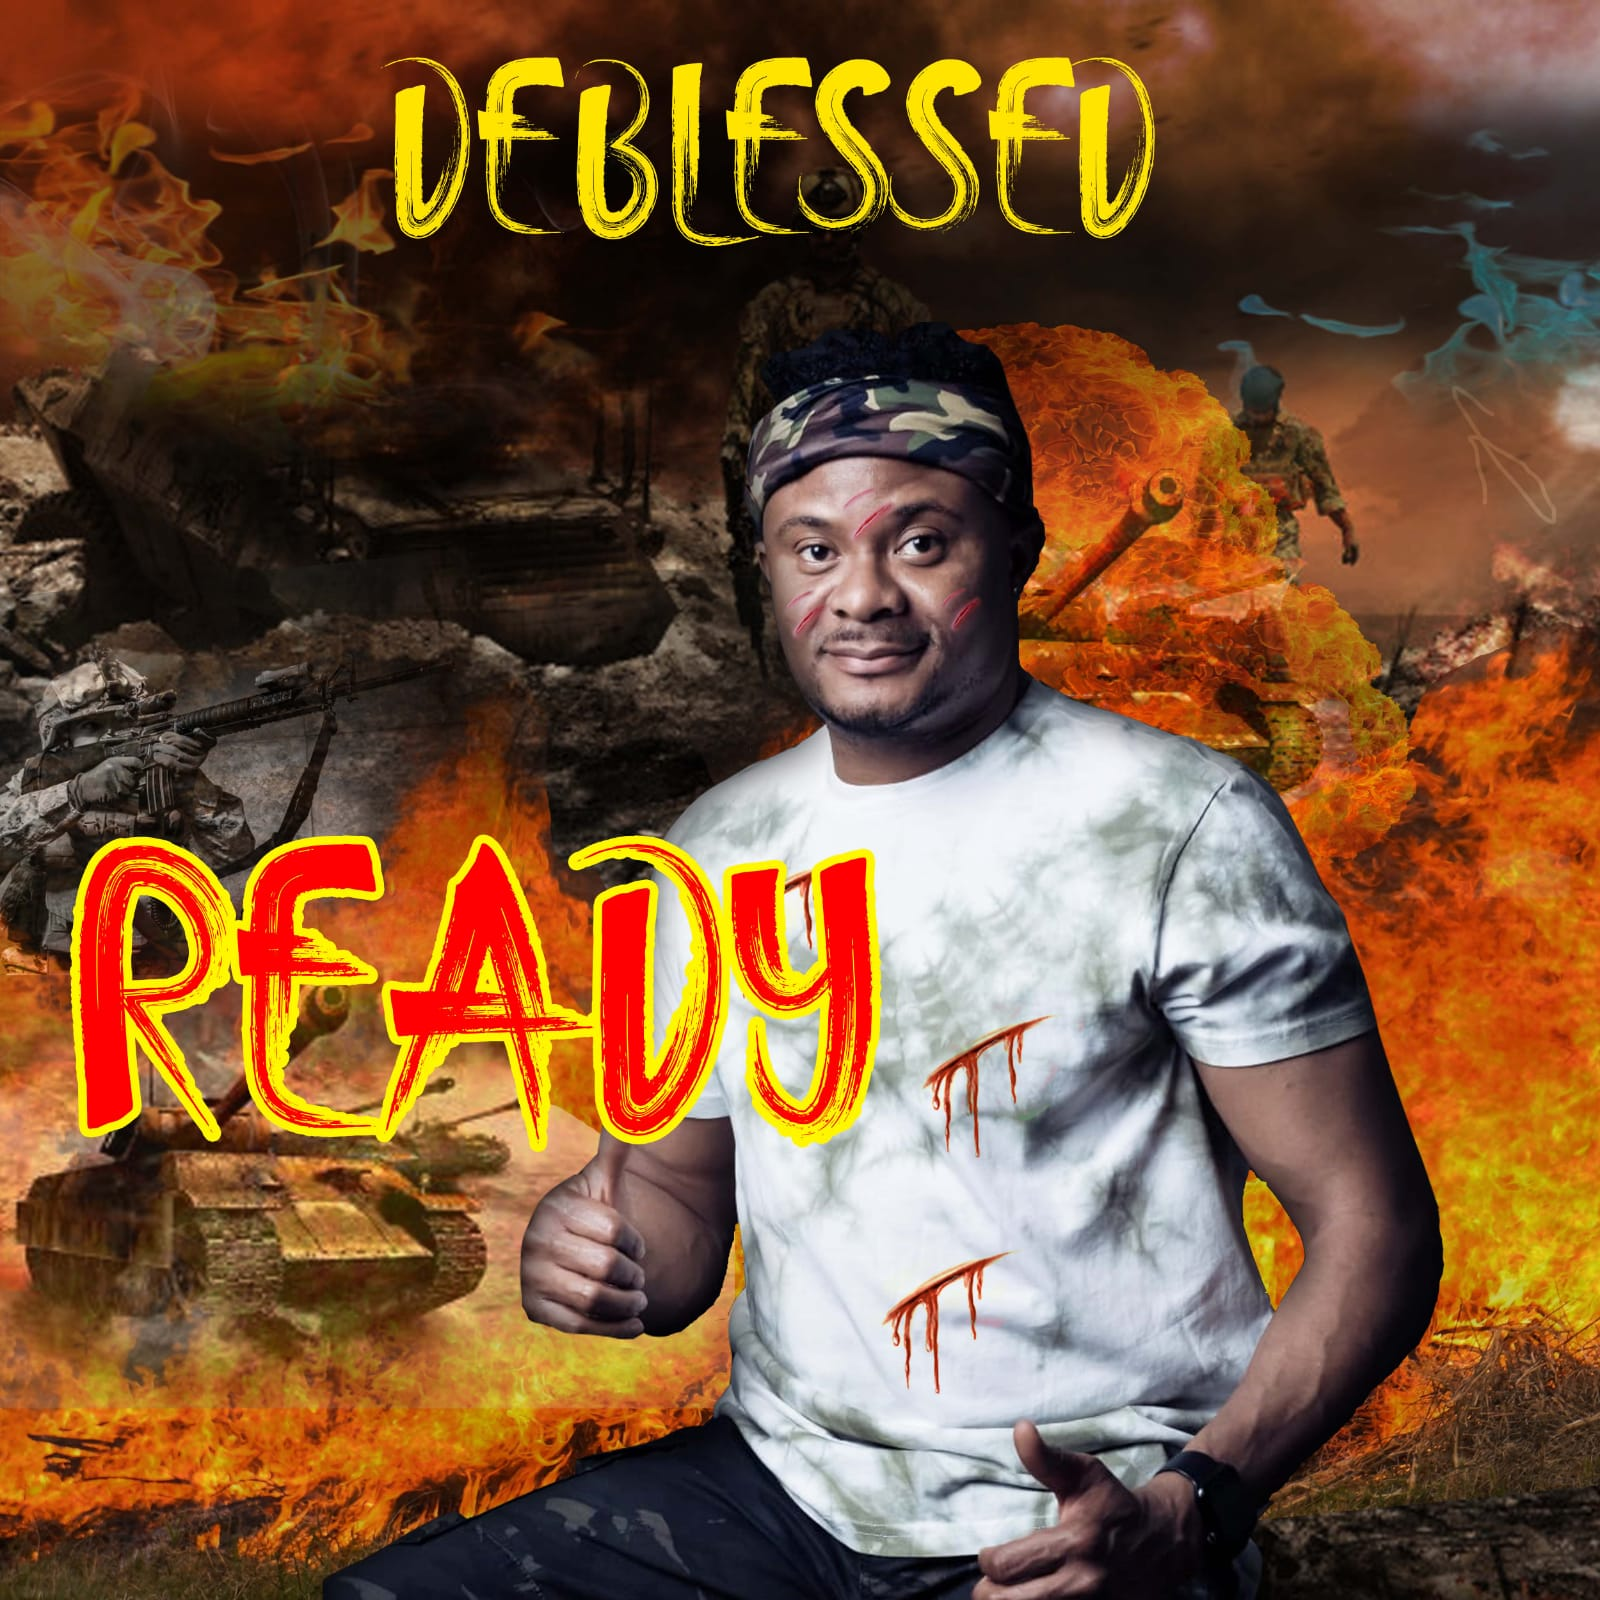 Deblessed - Ready